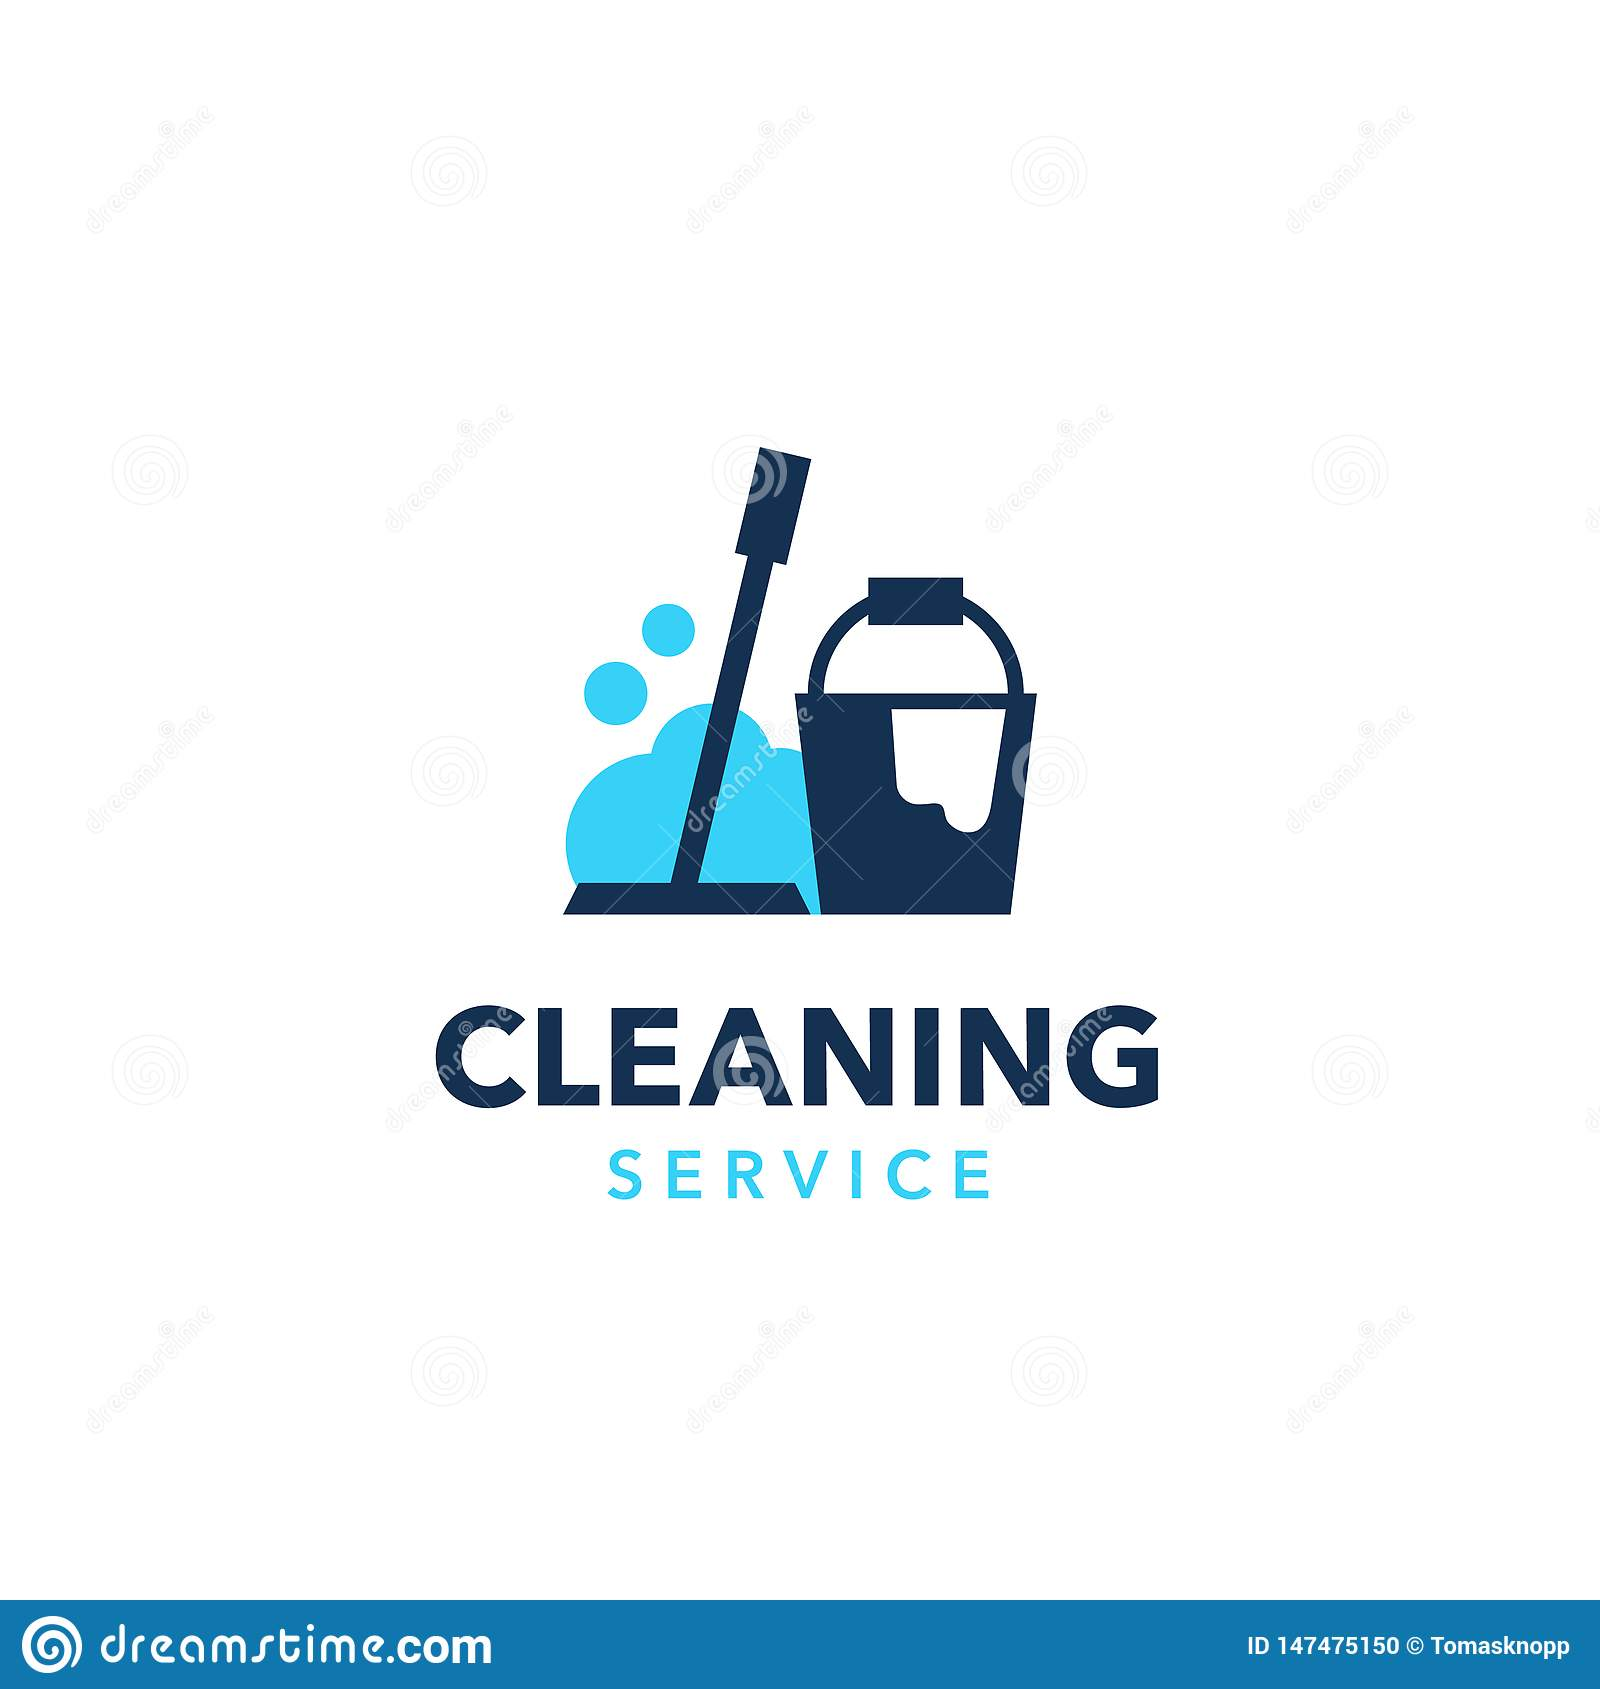 Cleaning Company Logo Stock Illustrations 3 162 Cleaning Company Logo Stock Illustrations Vectors Clipart Dreamstime